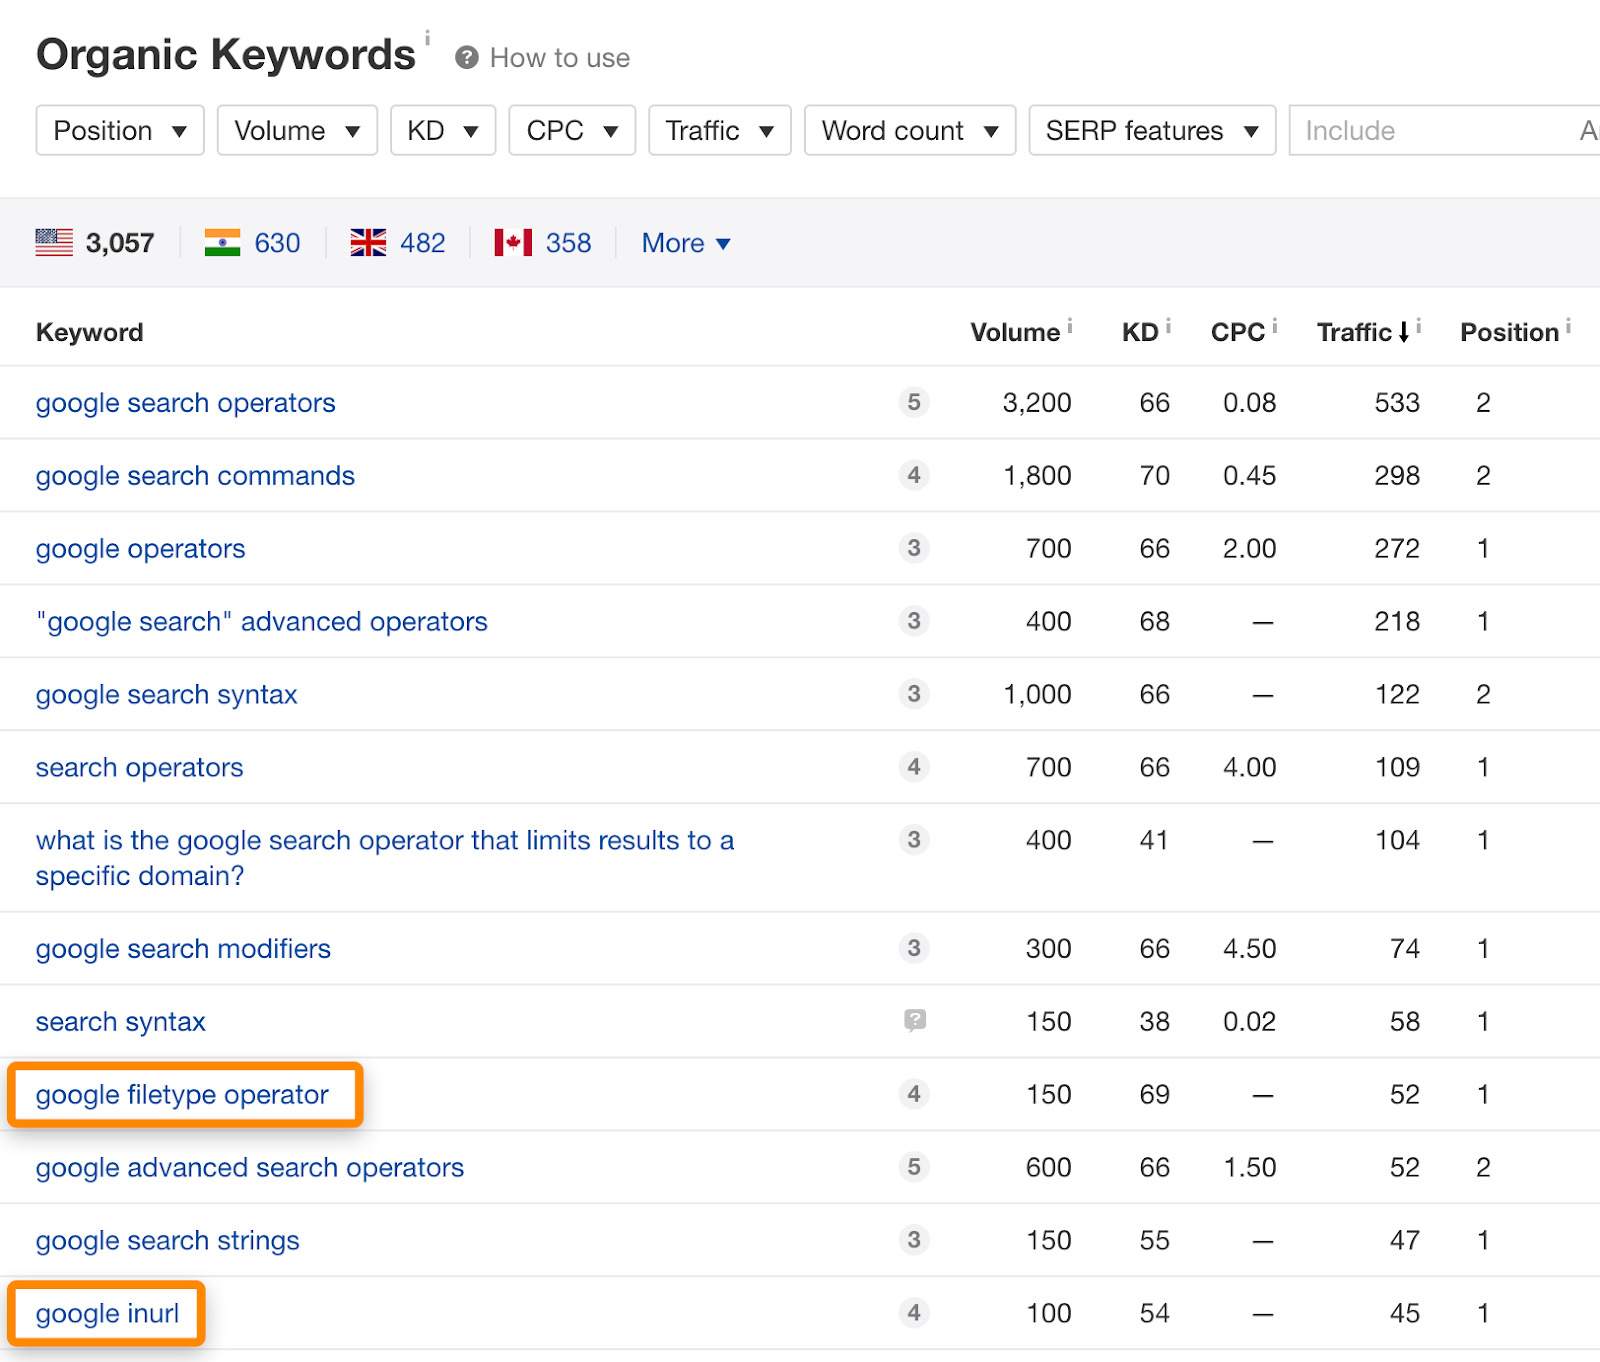 5 keywords google search operators